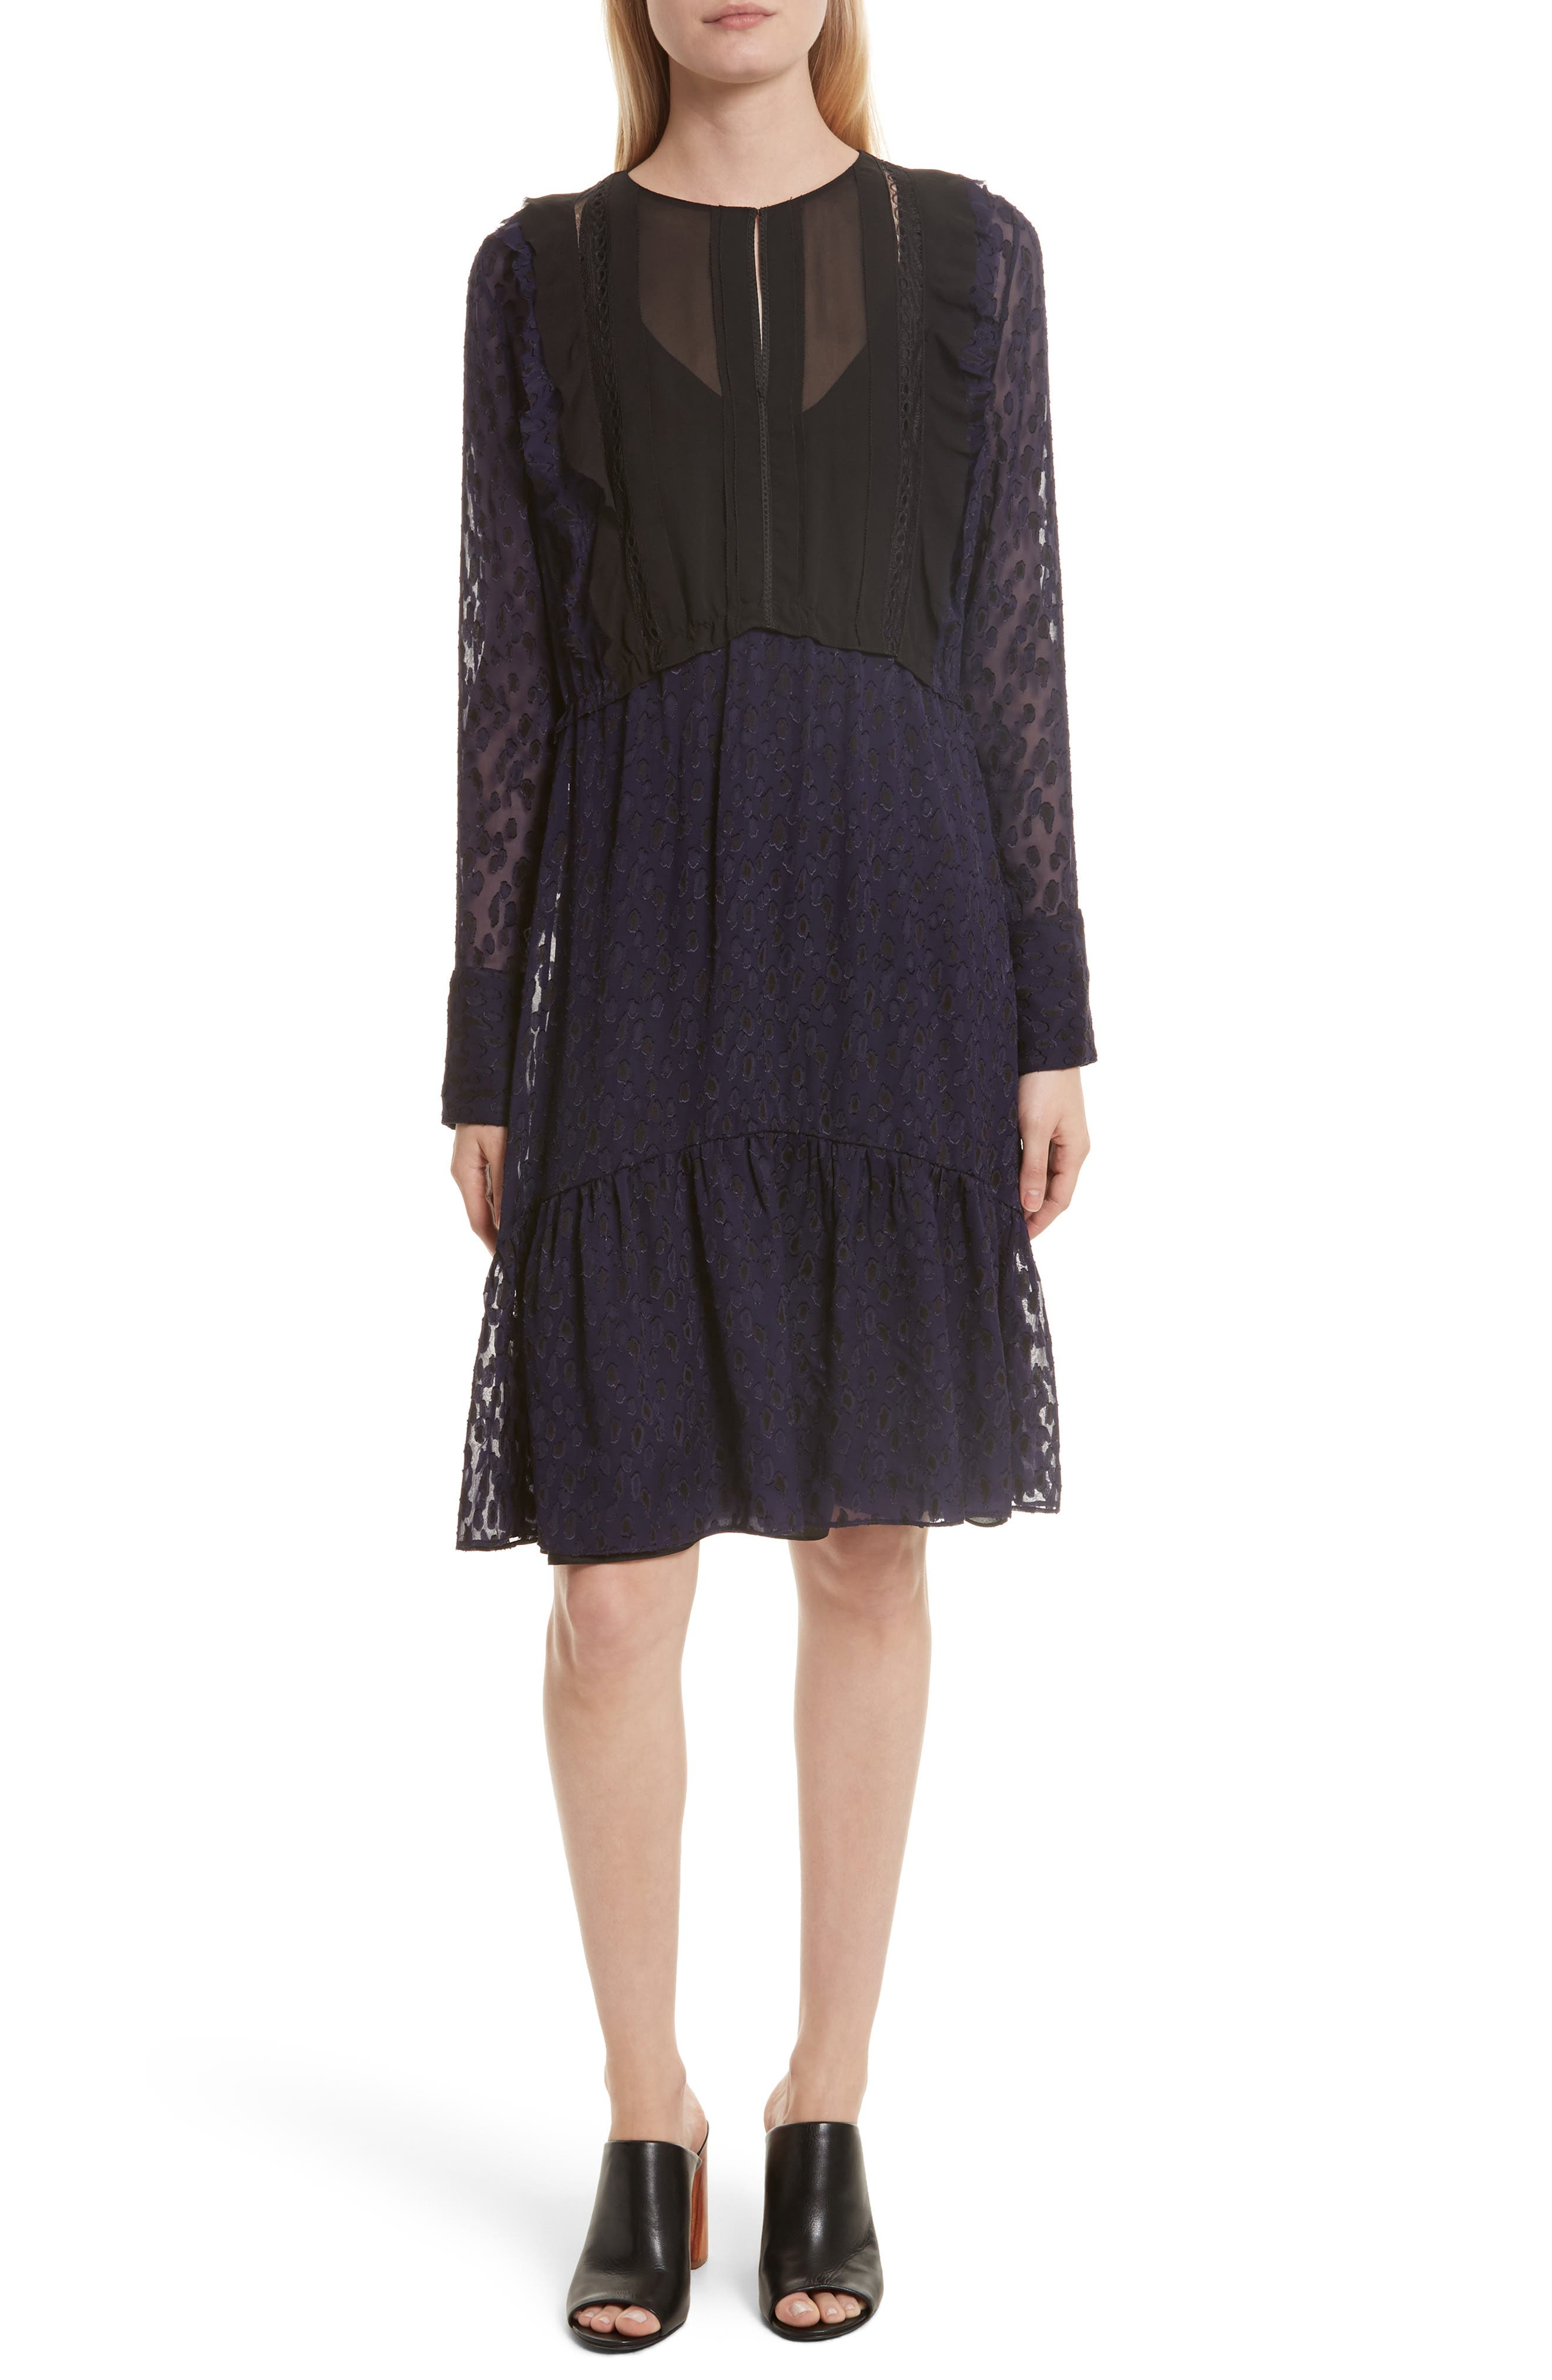 3.1 Phillip Lim Fil Coupé Silk Blend Dress